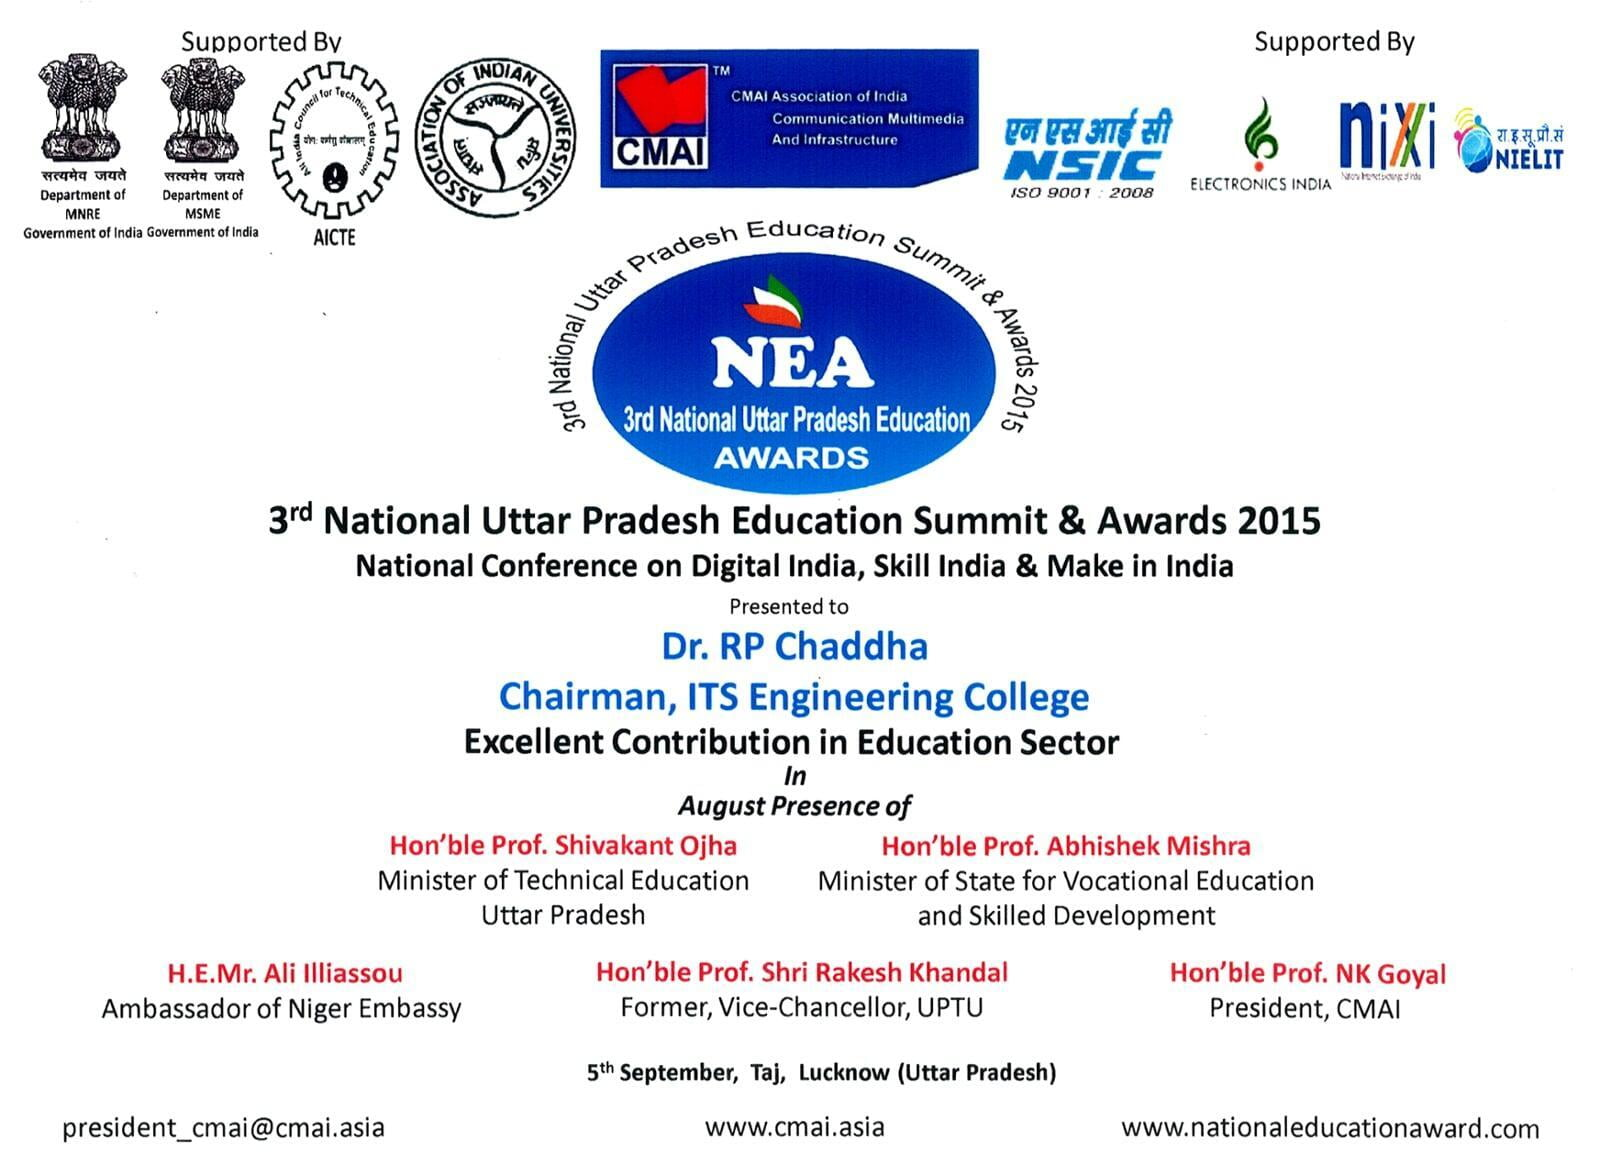 Excellent Contribution in Education Sector